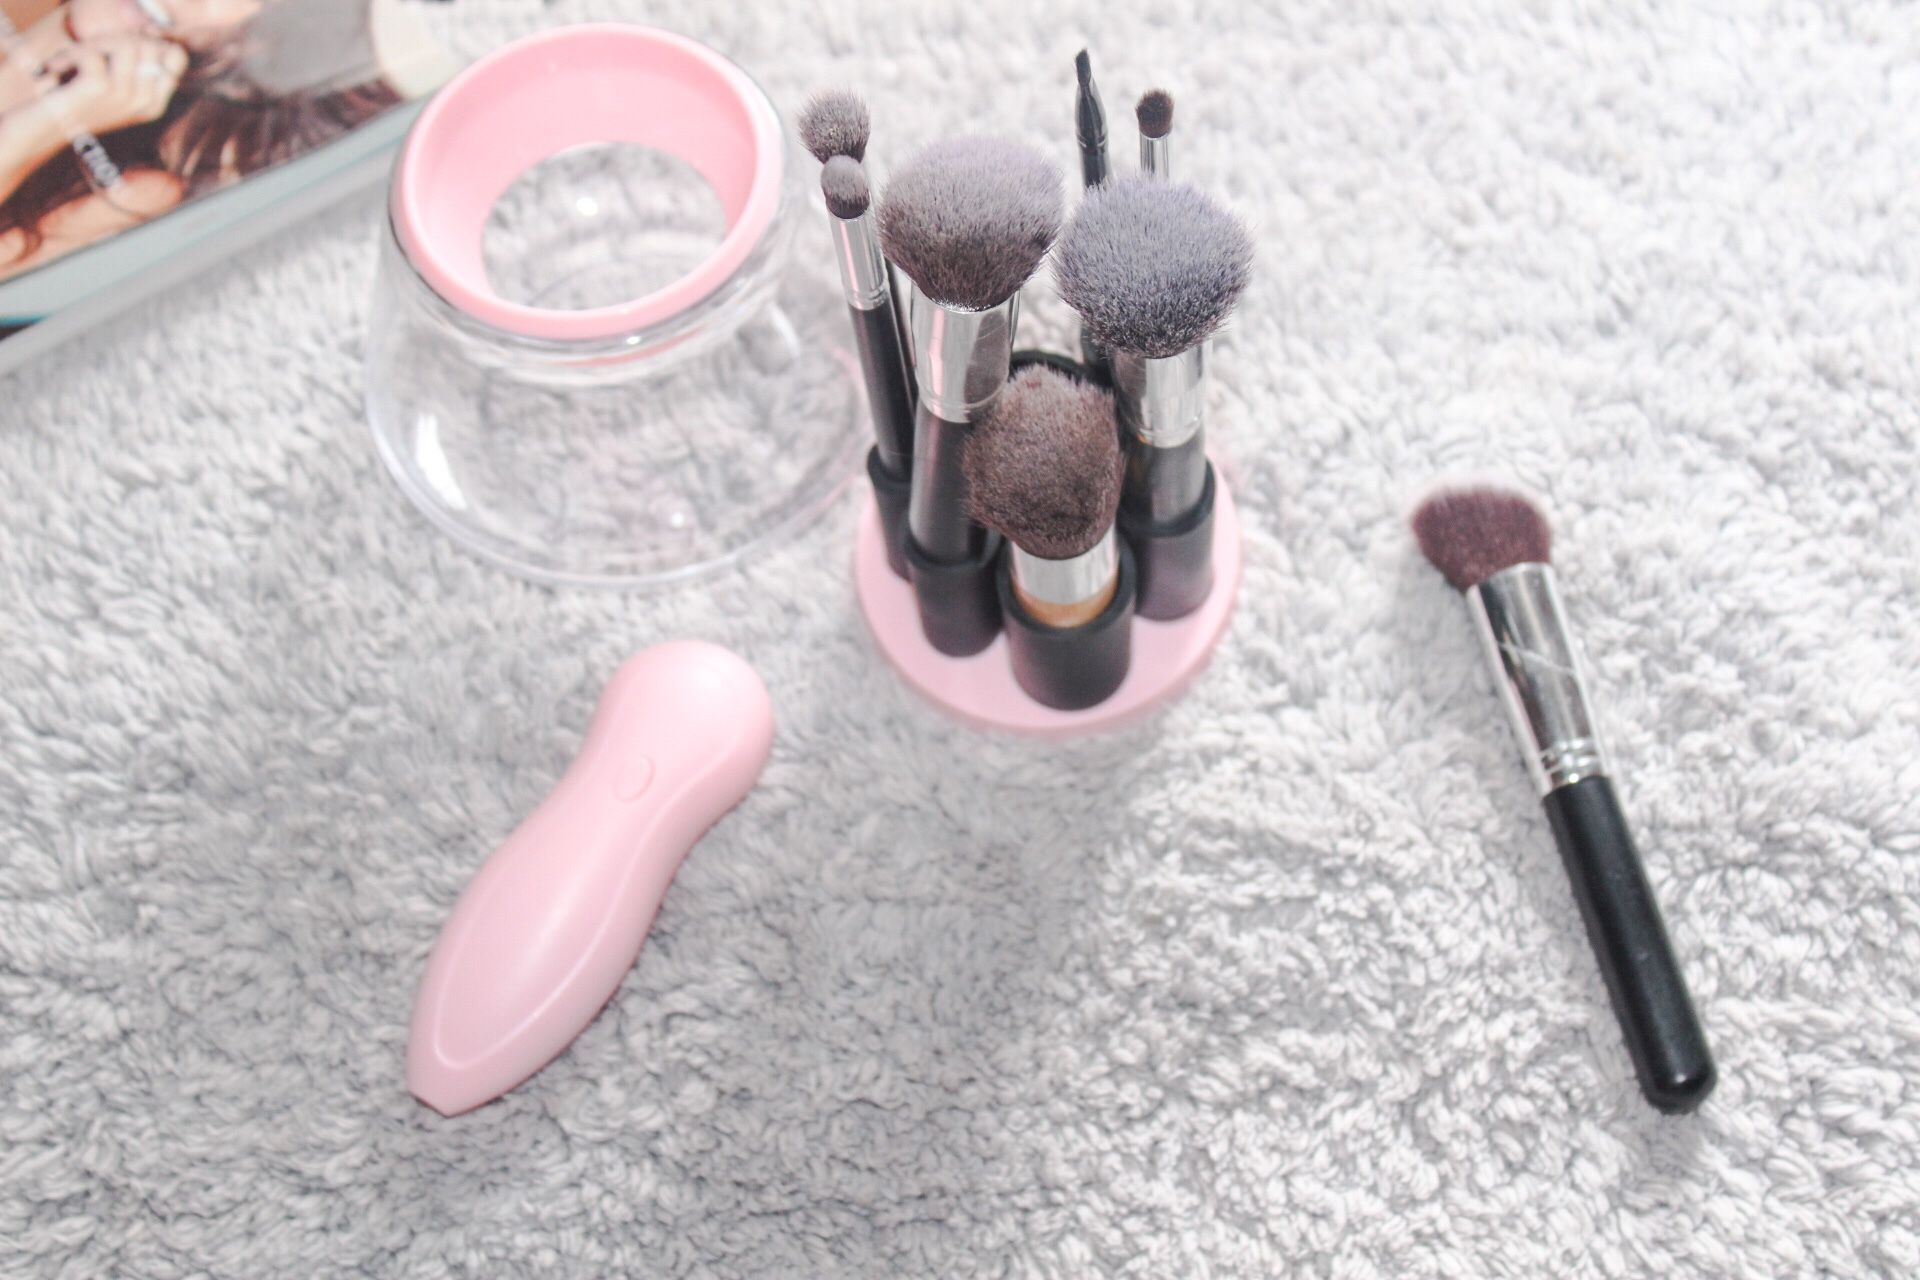 STYLPRO REVIEW MAKEUP BRUSH CLEANER & DRYER. Makeup